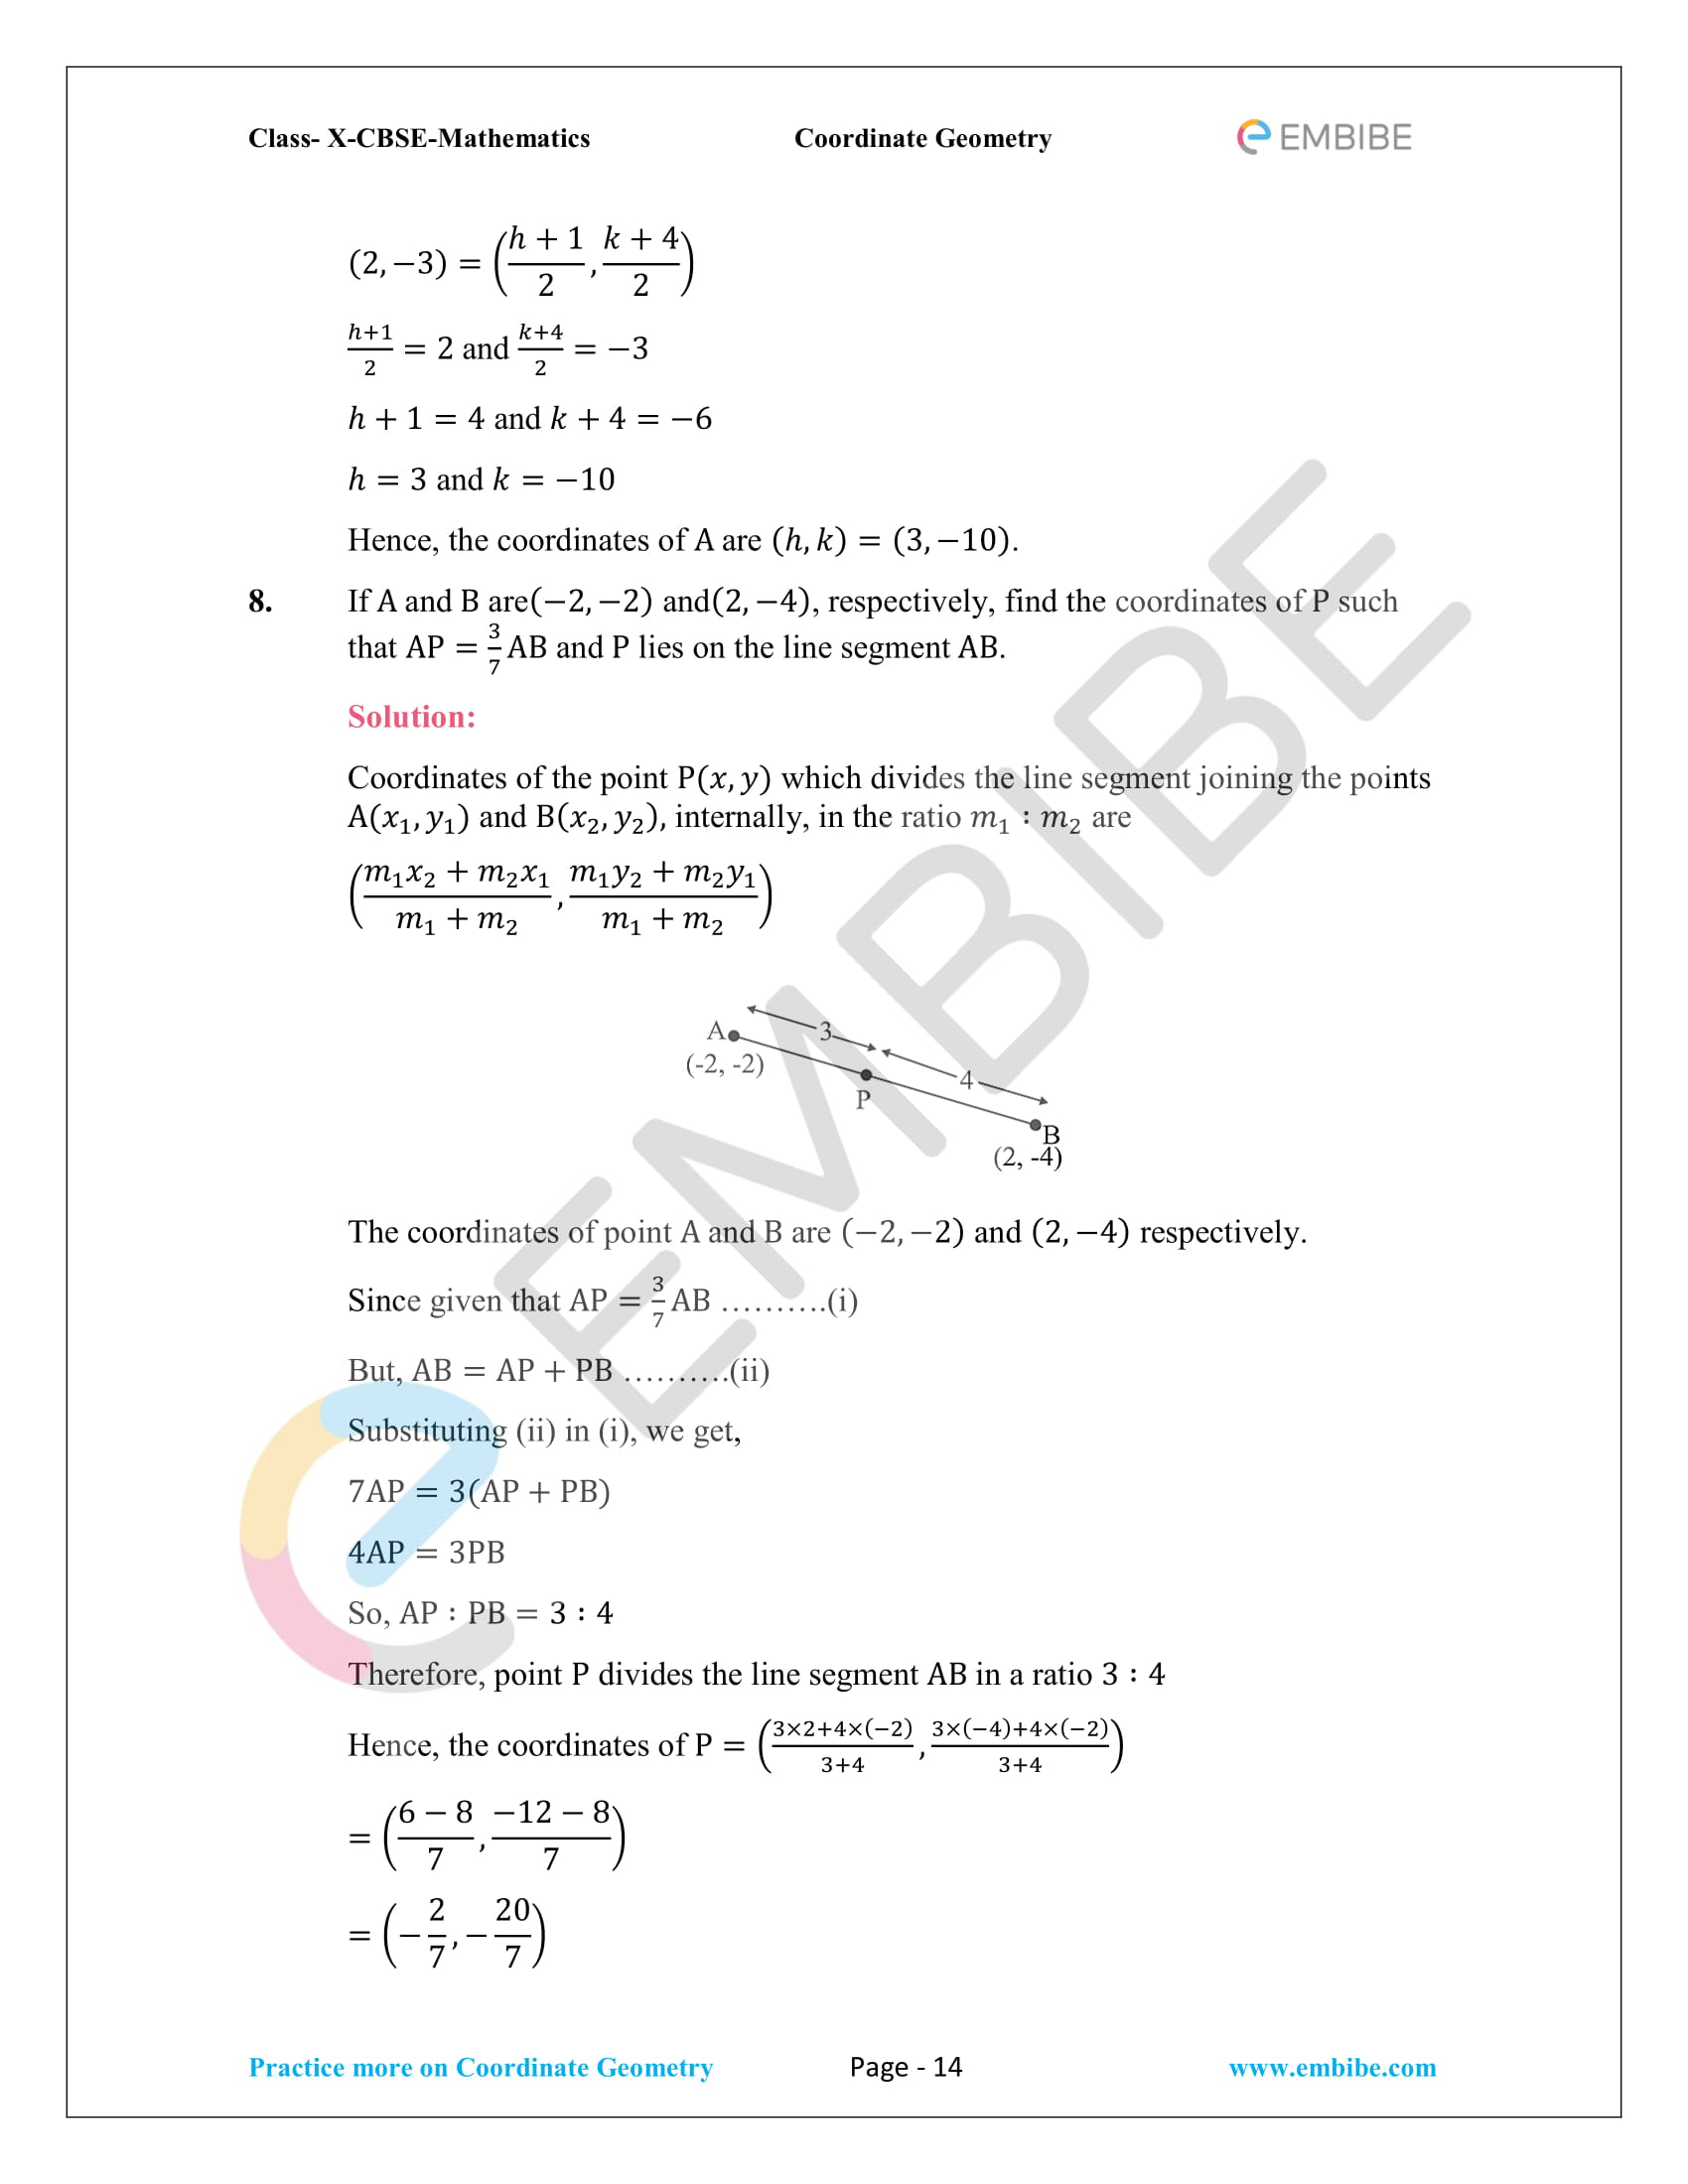 CBSE NCERT Solutions For Class 10 Maths Chapter 7 Coordinate Geometry